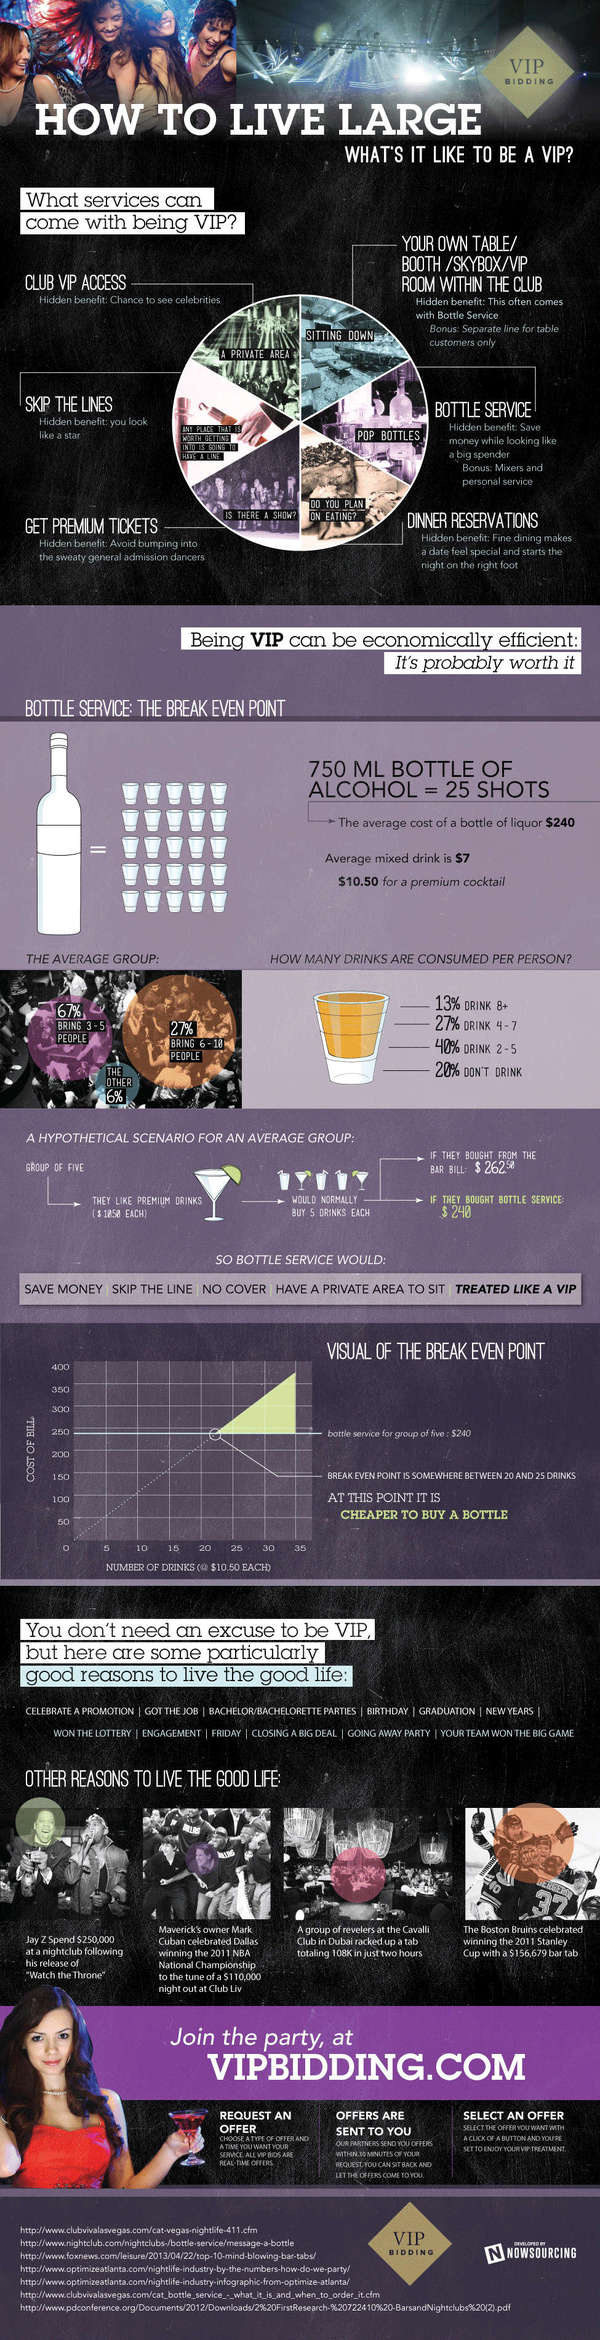 How to Live Large: What's it like to be a VIP #vip #savings #infographic #celebrate #drinks #clubs #fun #party